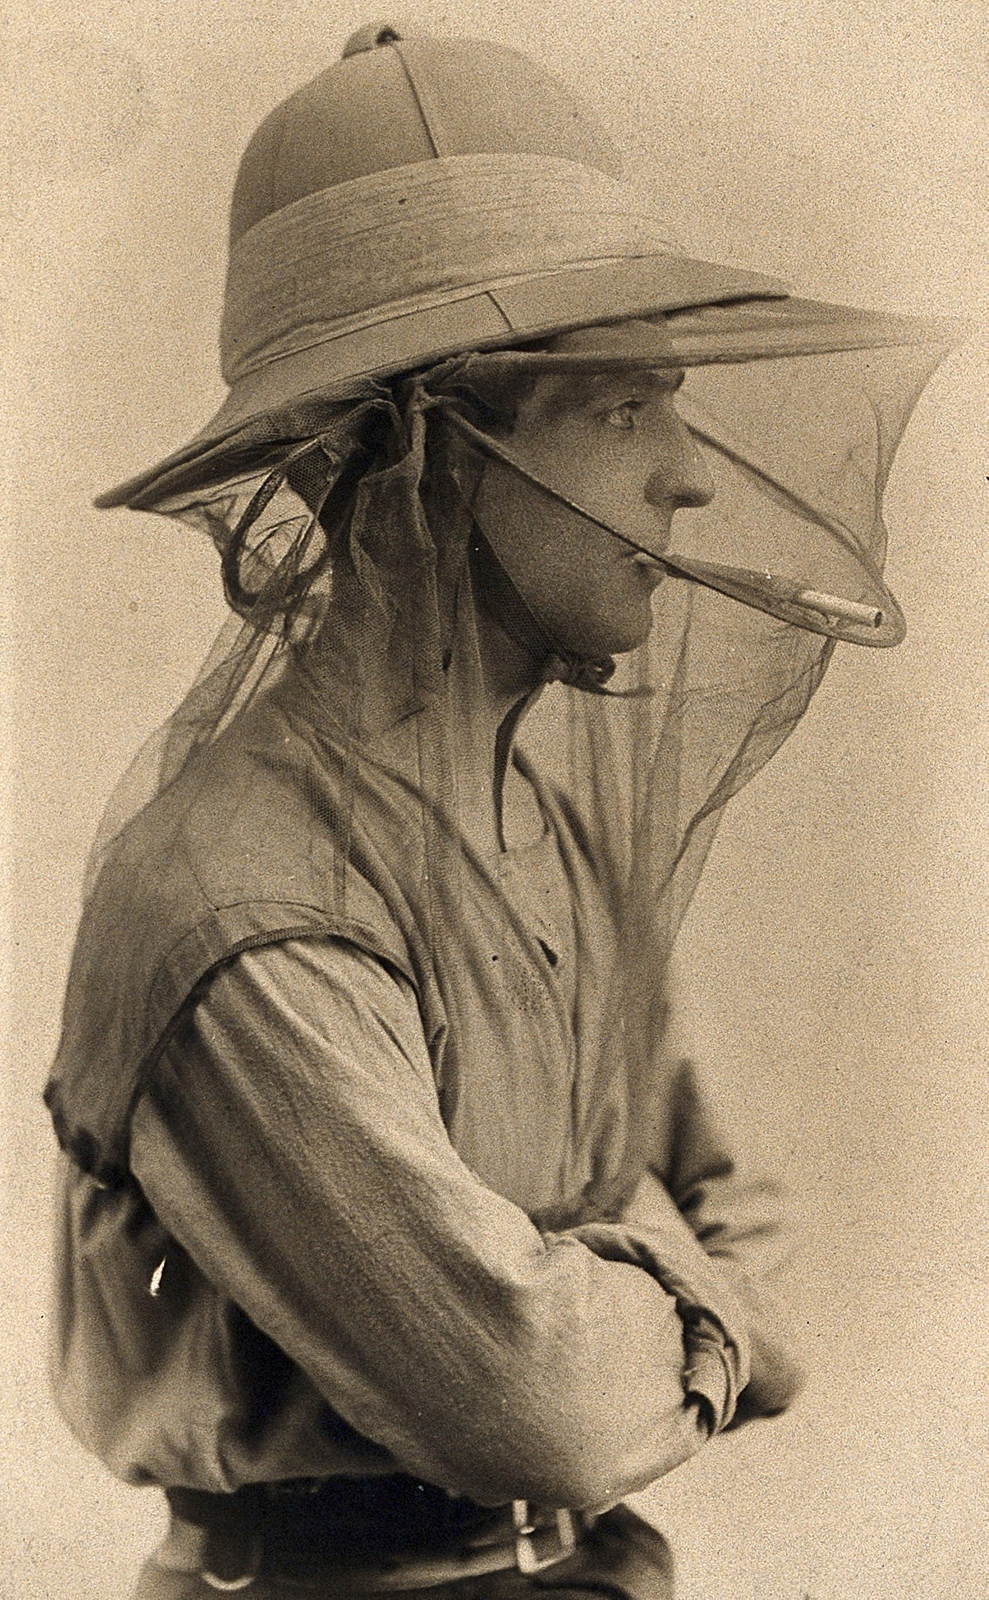 Black and white photo of man in pith helmet with net